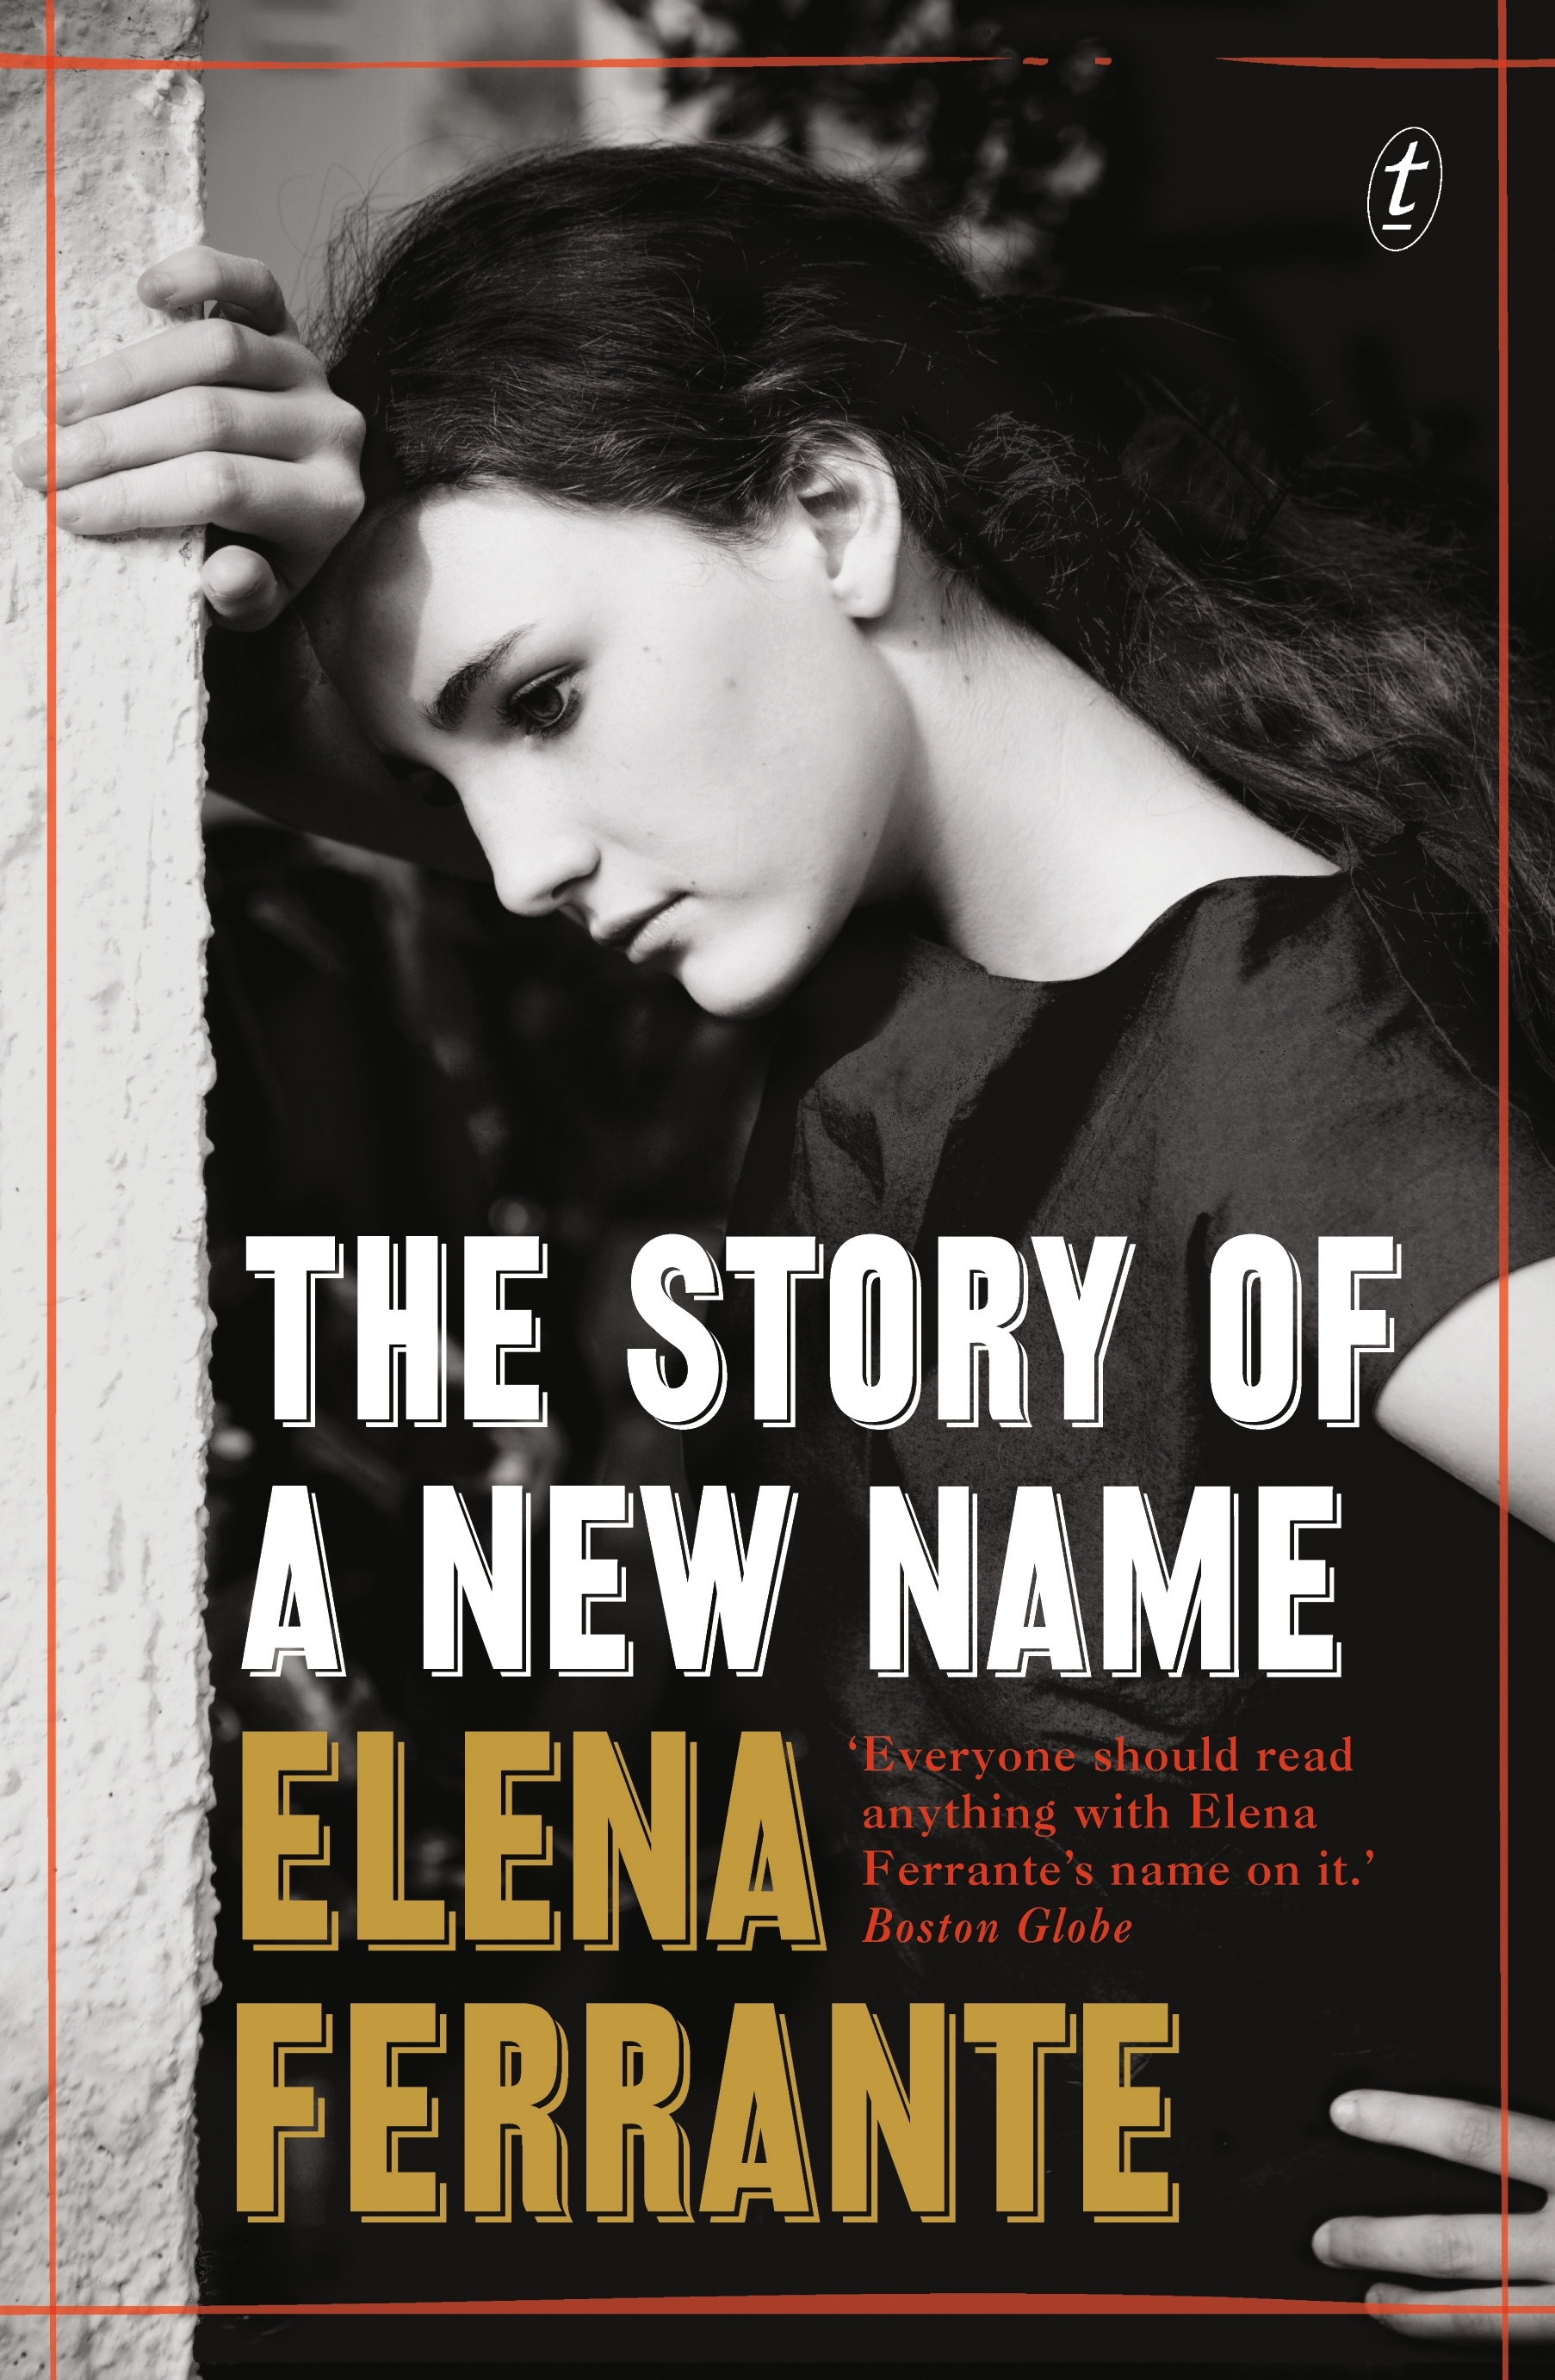 The Story of a New Name (The Neapolitan Novels, Book Two) by Elena Ferrante, ISBN: 9781925240016